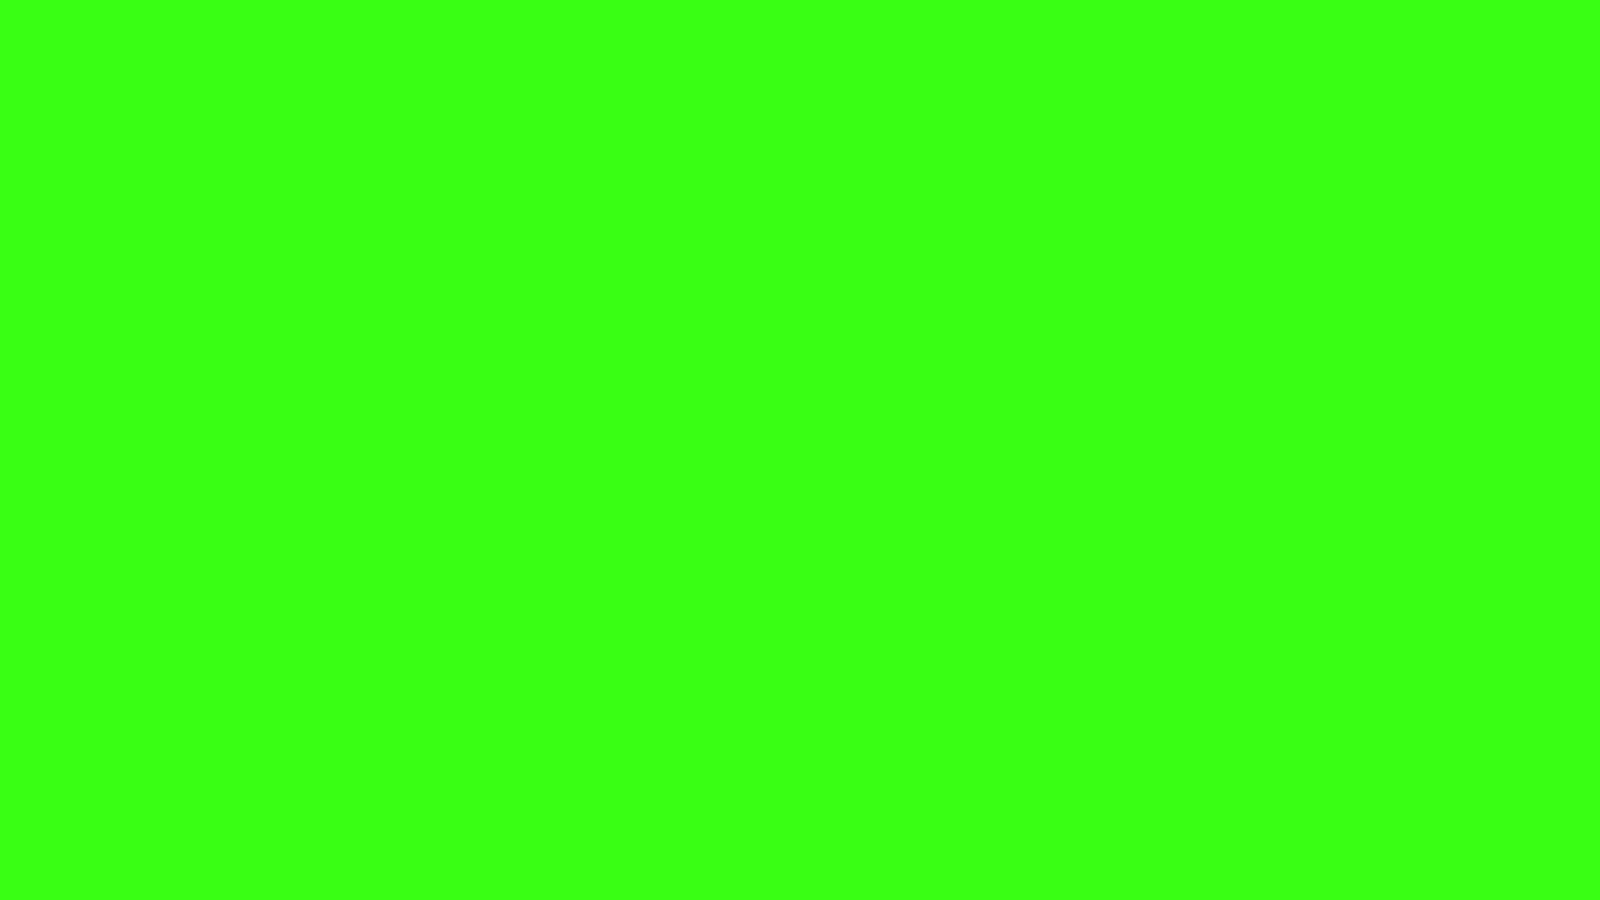 green neon background - photo #38